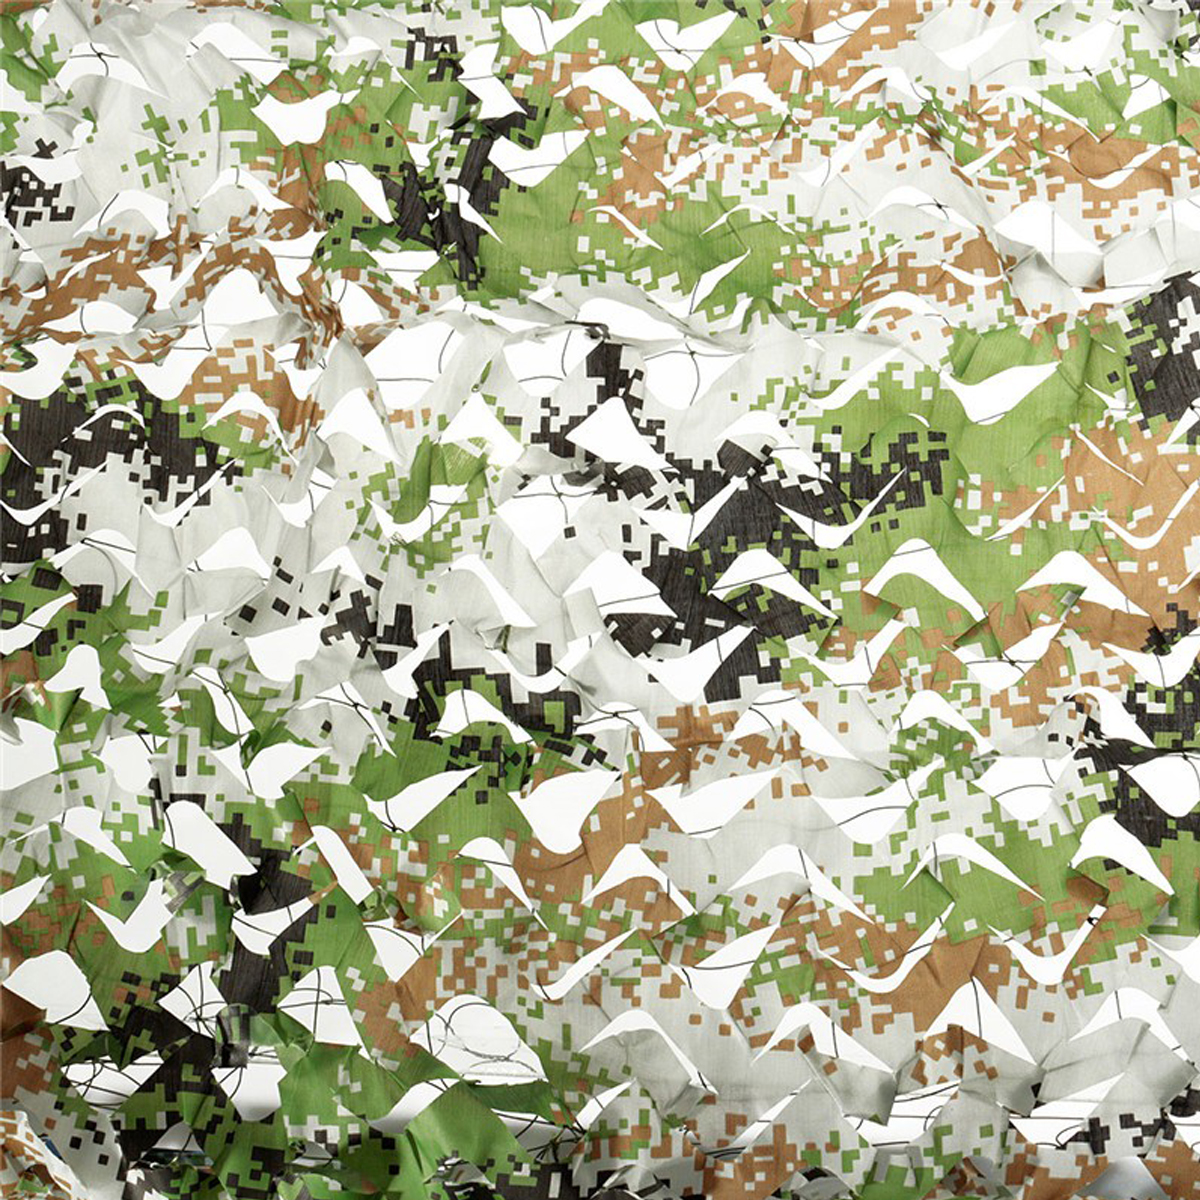 Outdoor Camping Woodland Leaves Digital Camouflage Net Tactical Double Layer Netting Web